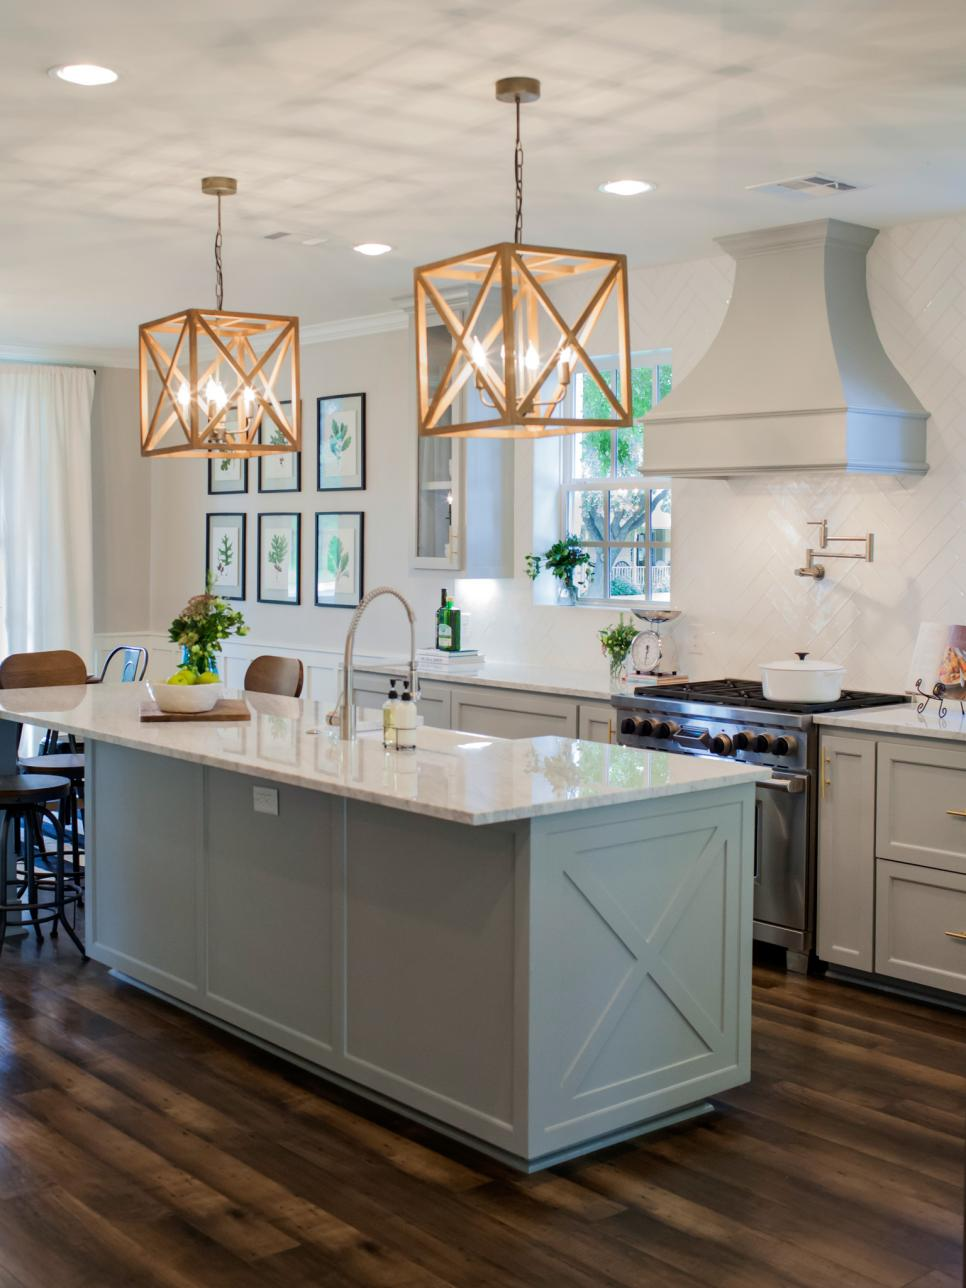 Fixer upper a contemporary update for a family sized for Kitchen ideas joanna gaines